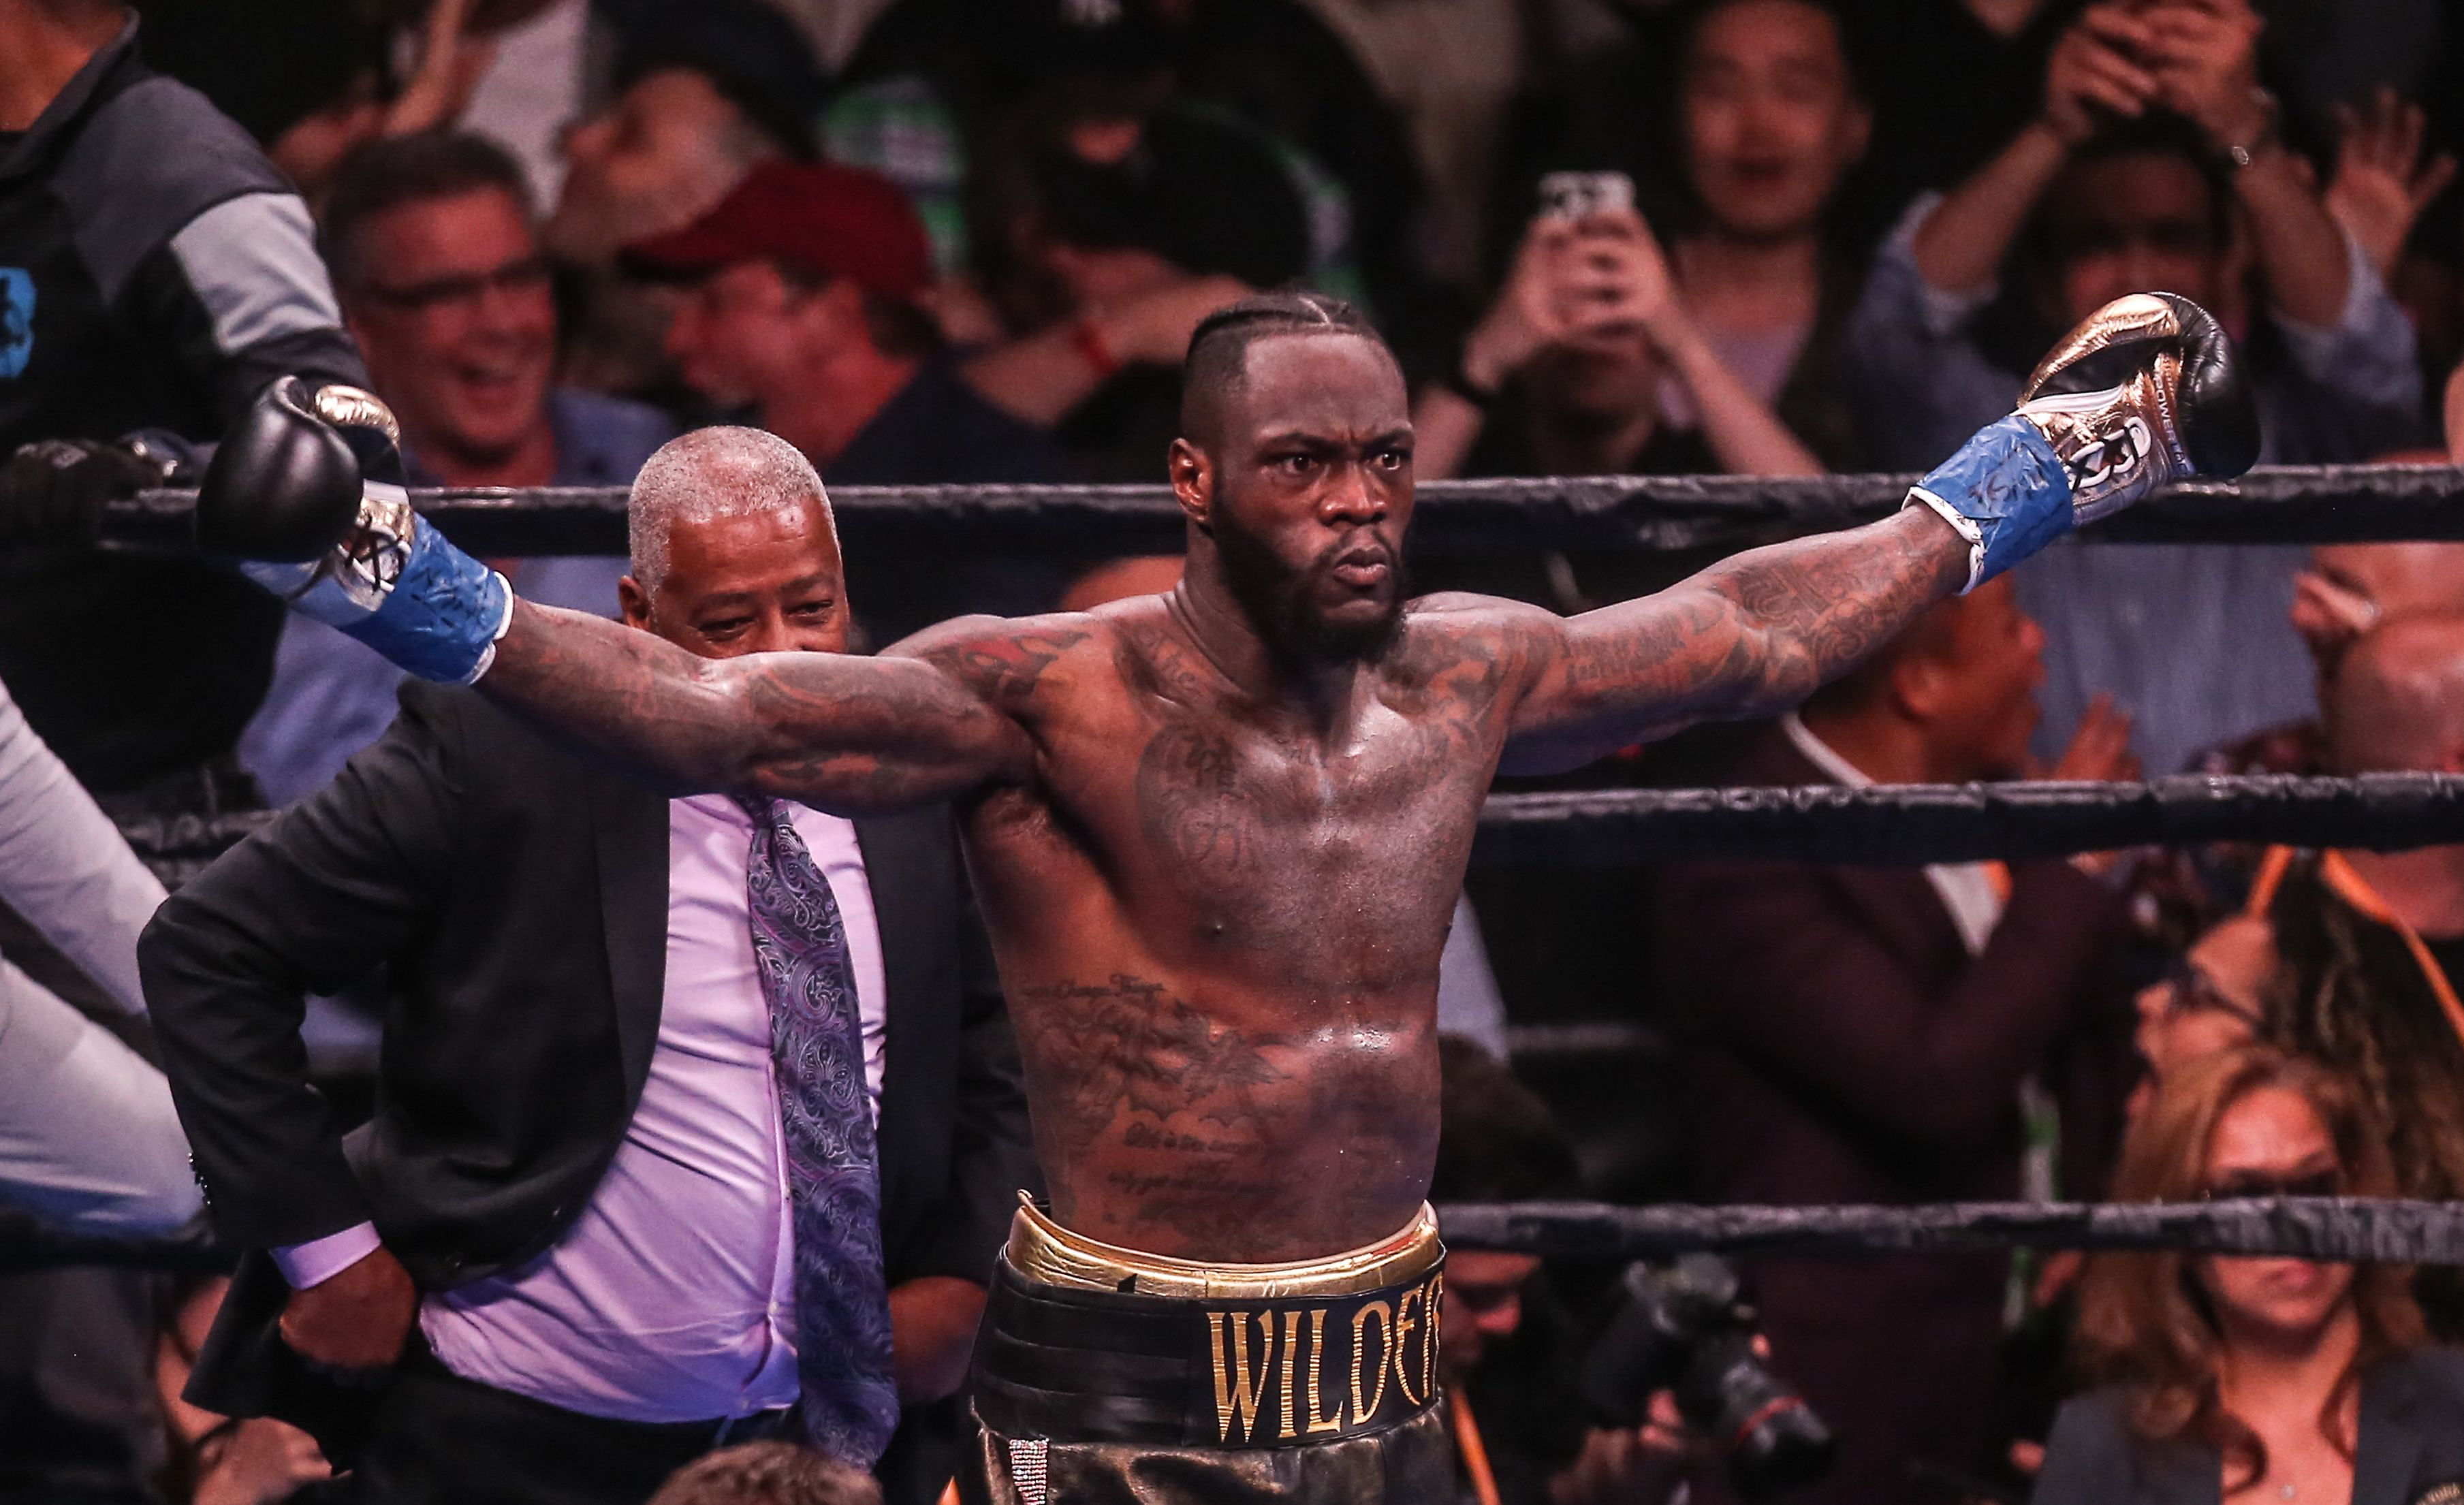 Deontay Wilder celebrating his victory